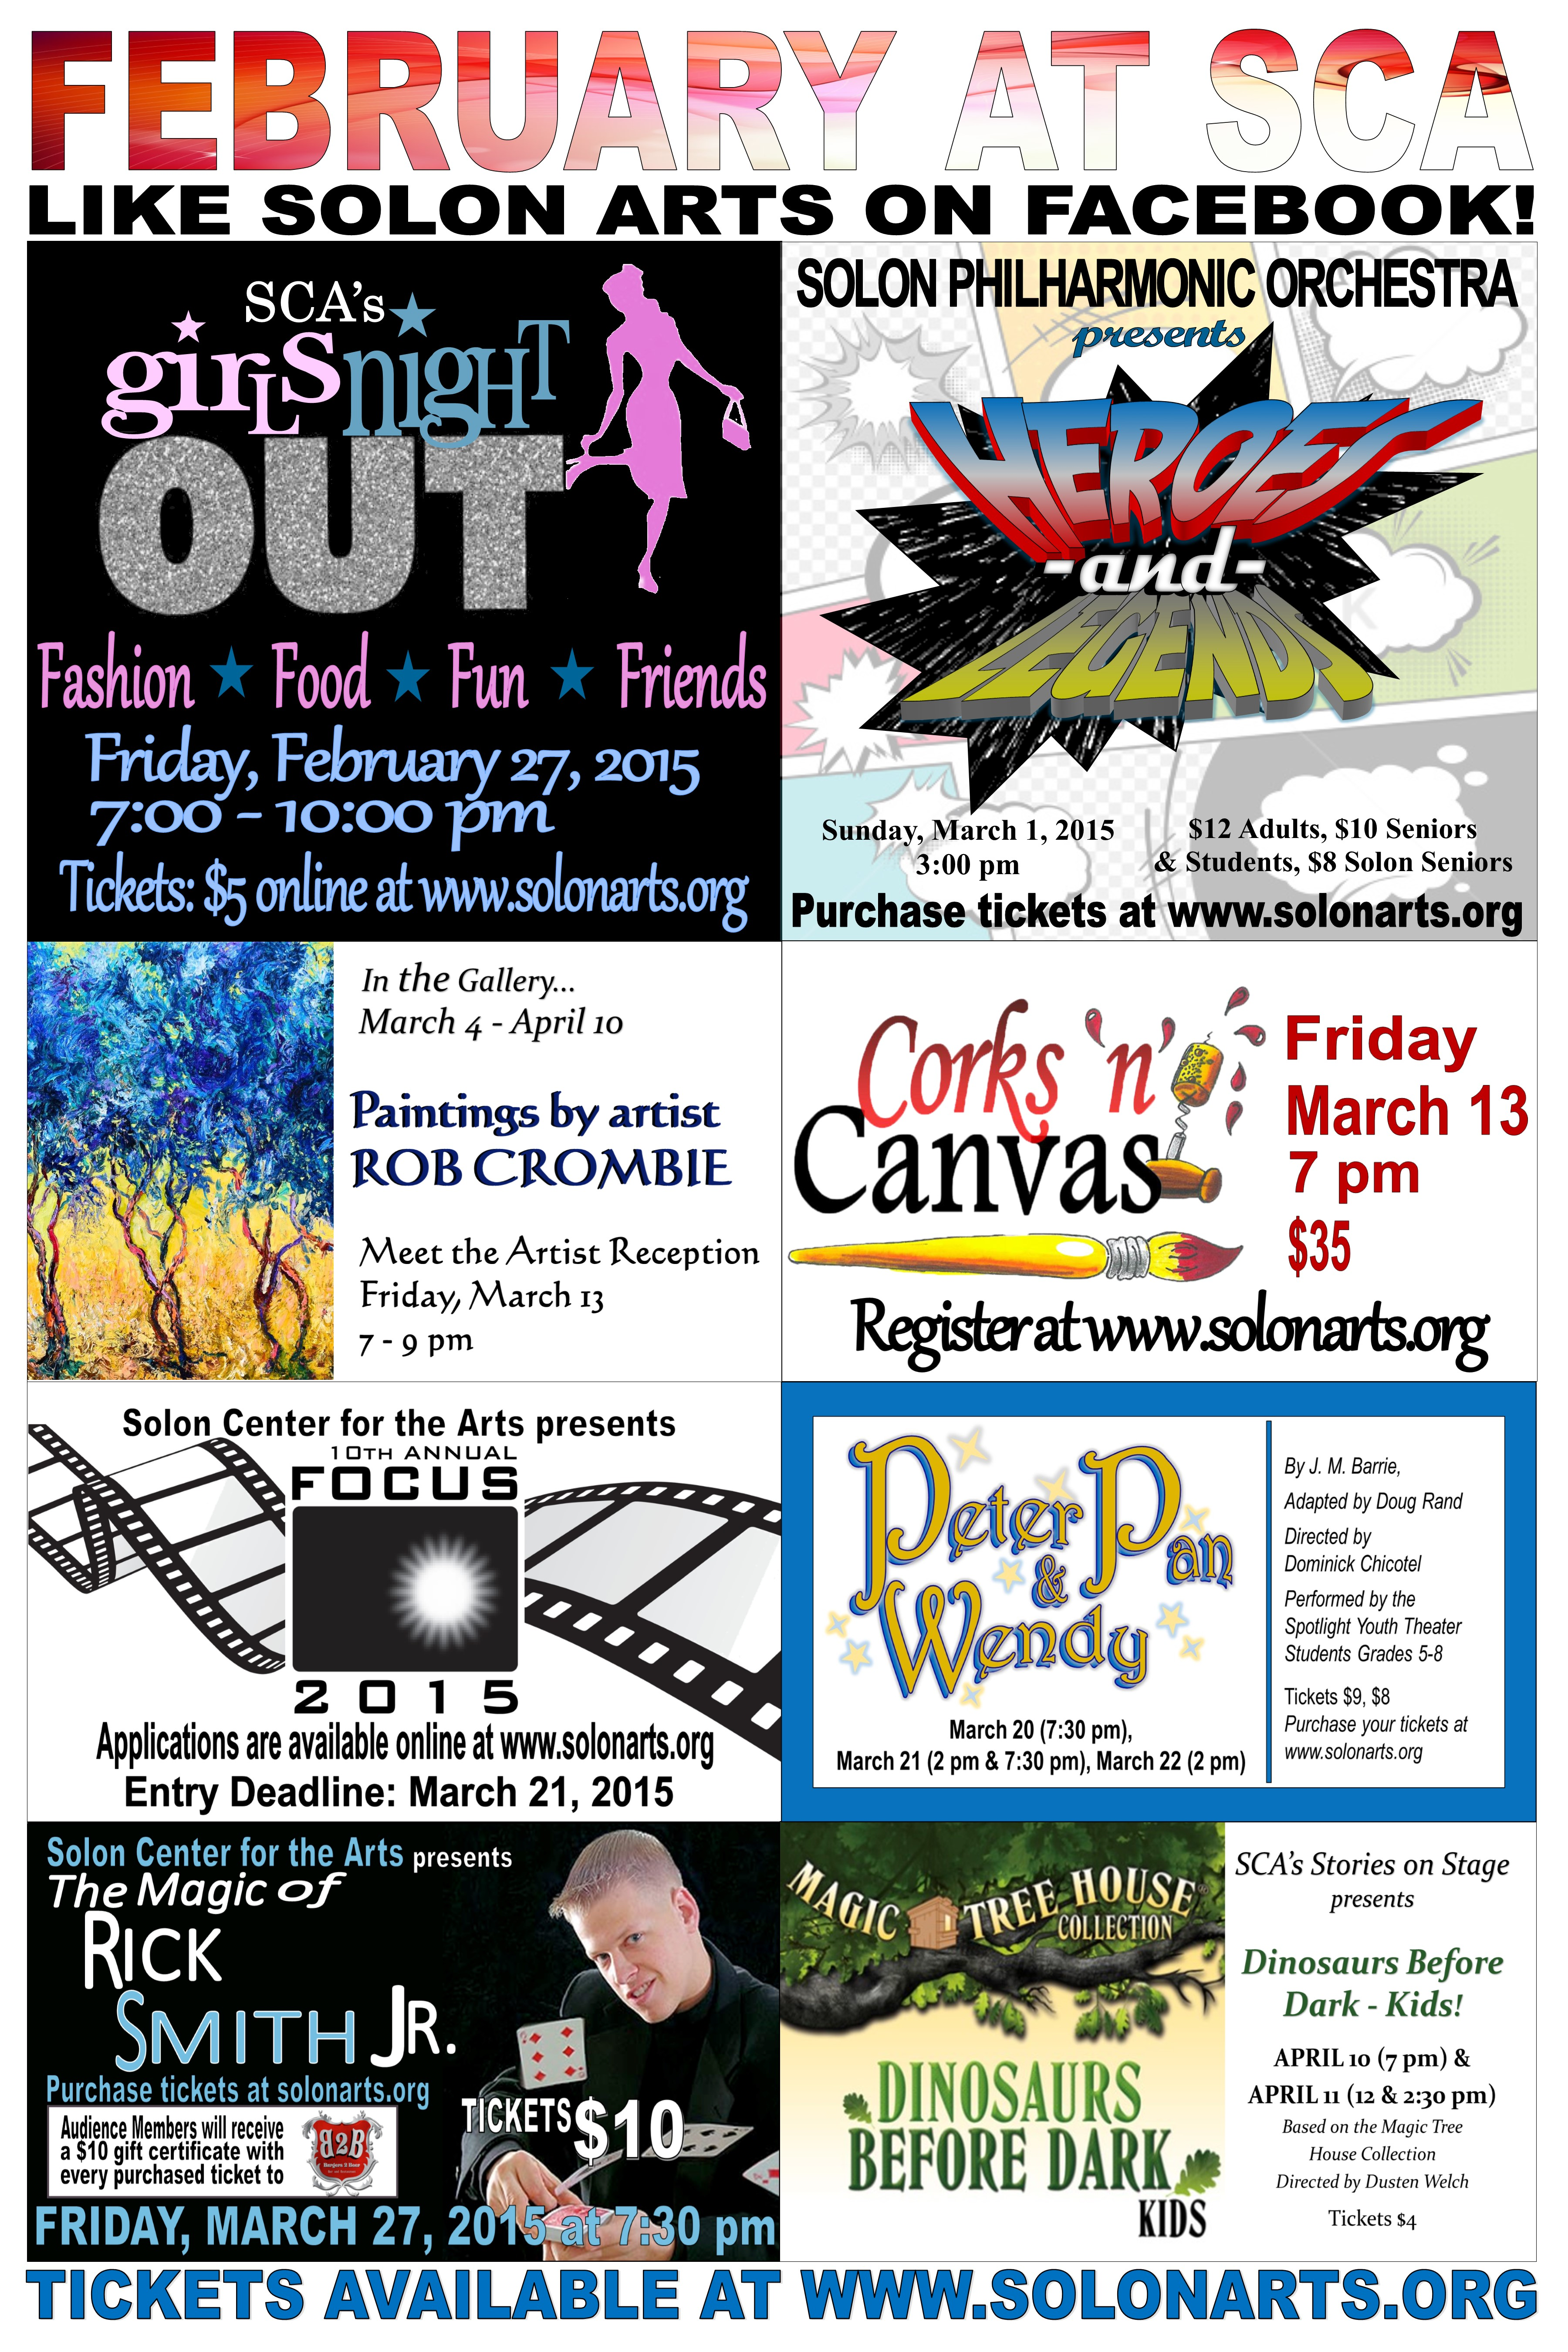 Upcoming Events Poster FEBRUARY - SCA.jpg